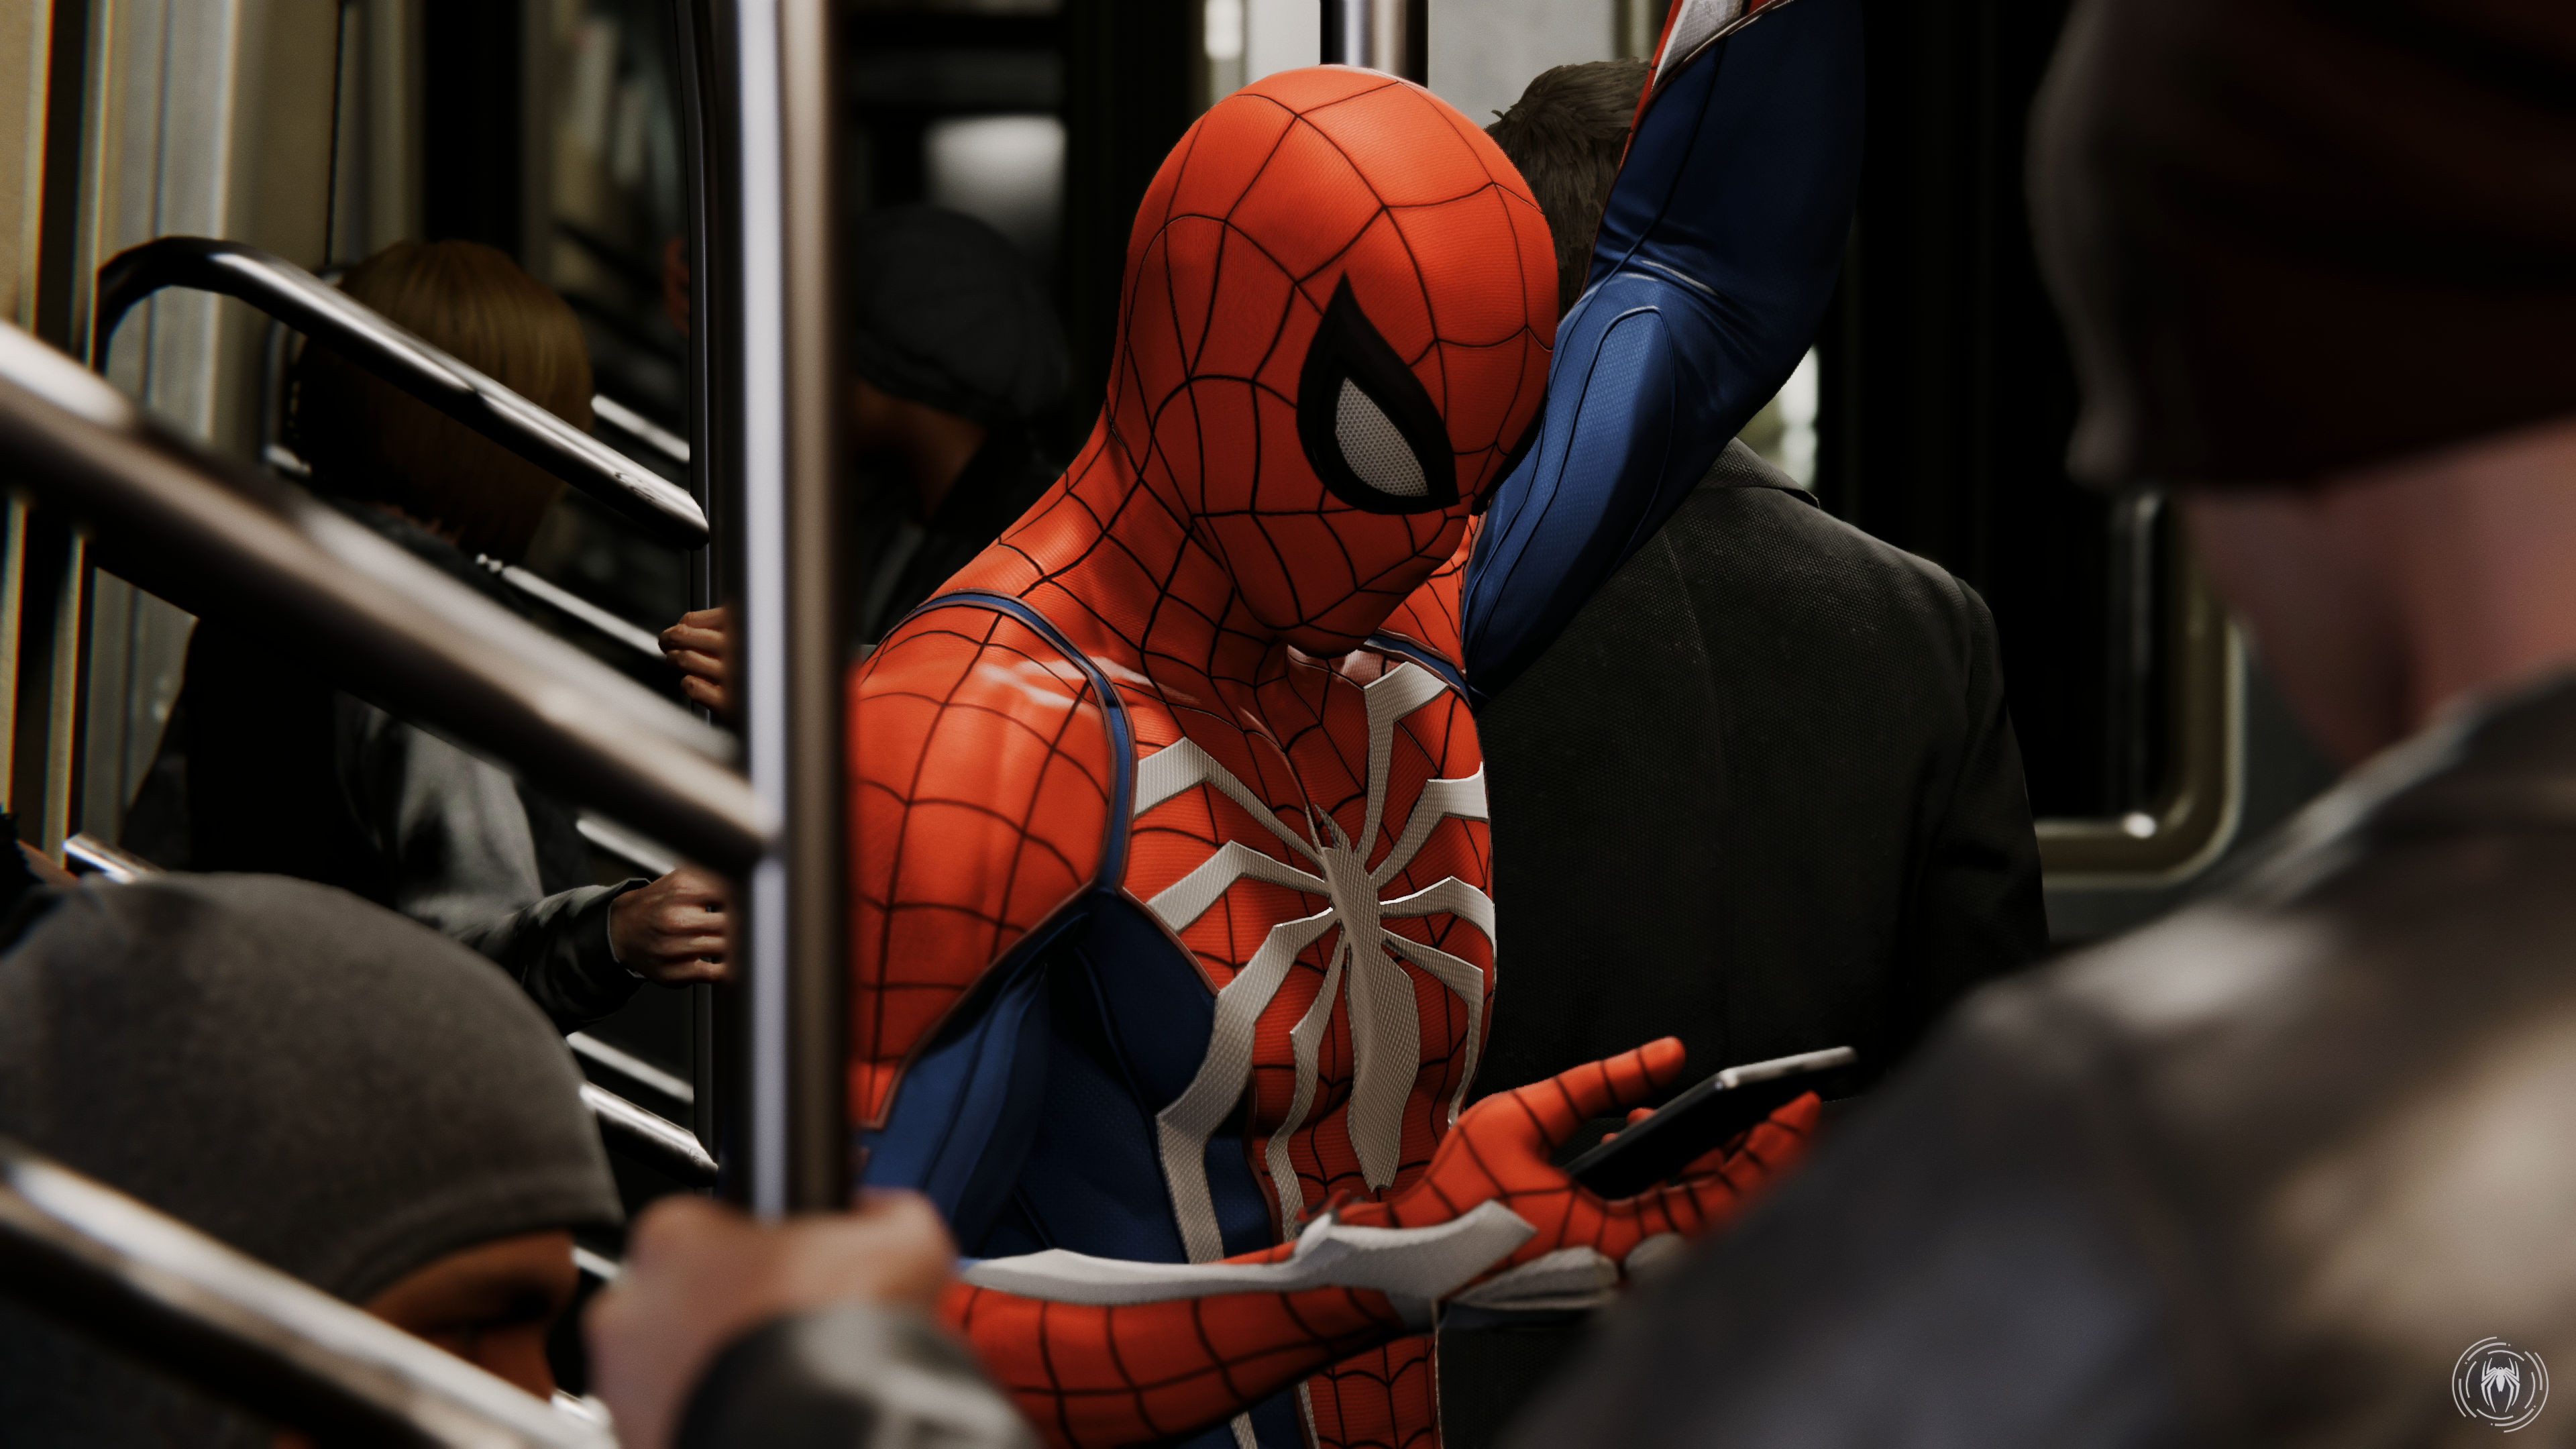 Spider-Man PS4: tips and tricks for your mission to save Manhattan